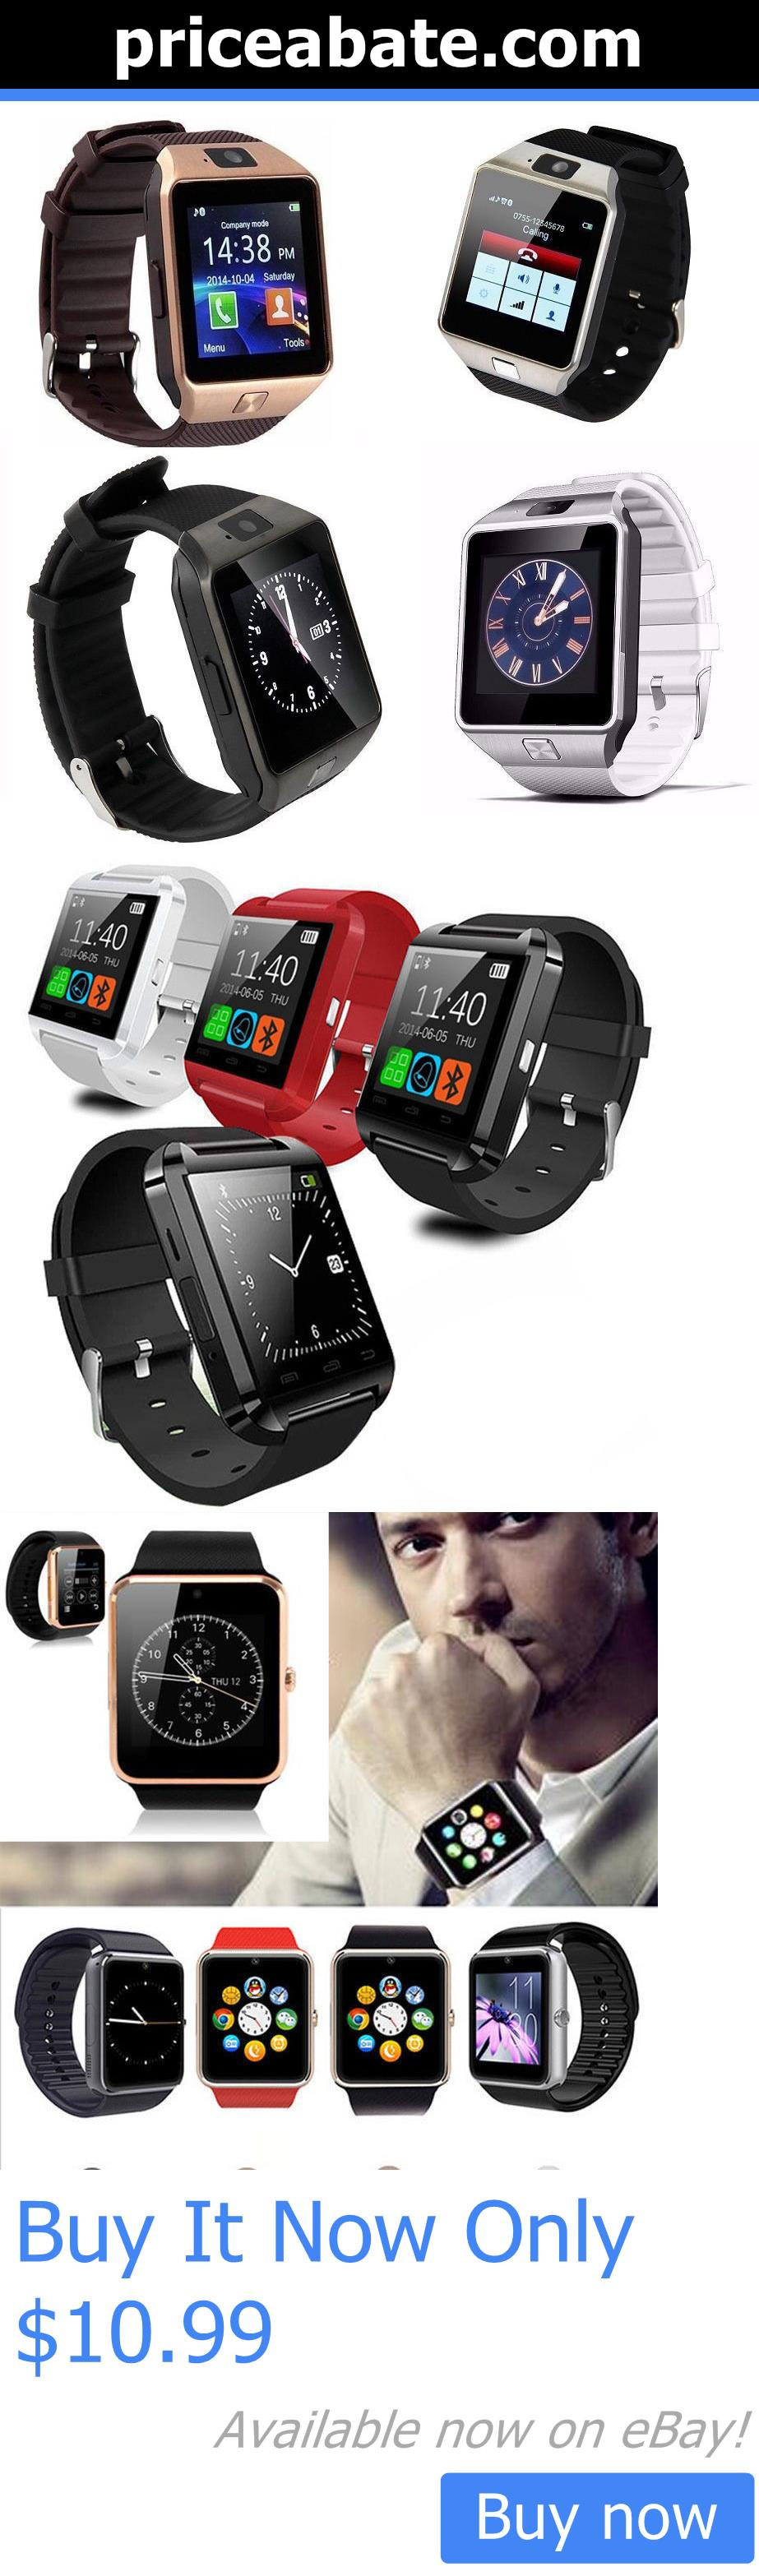 Smart Watches: Dz09 U-8Bluetooth Smart Wrist Watch Phone Mate For Android Ios Samsung Iphone Lg BUY IT NOW ONLY: $10.99 #priceabateSmartWatches OR #priceabate